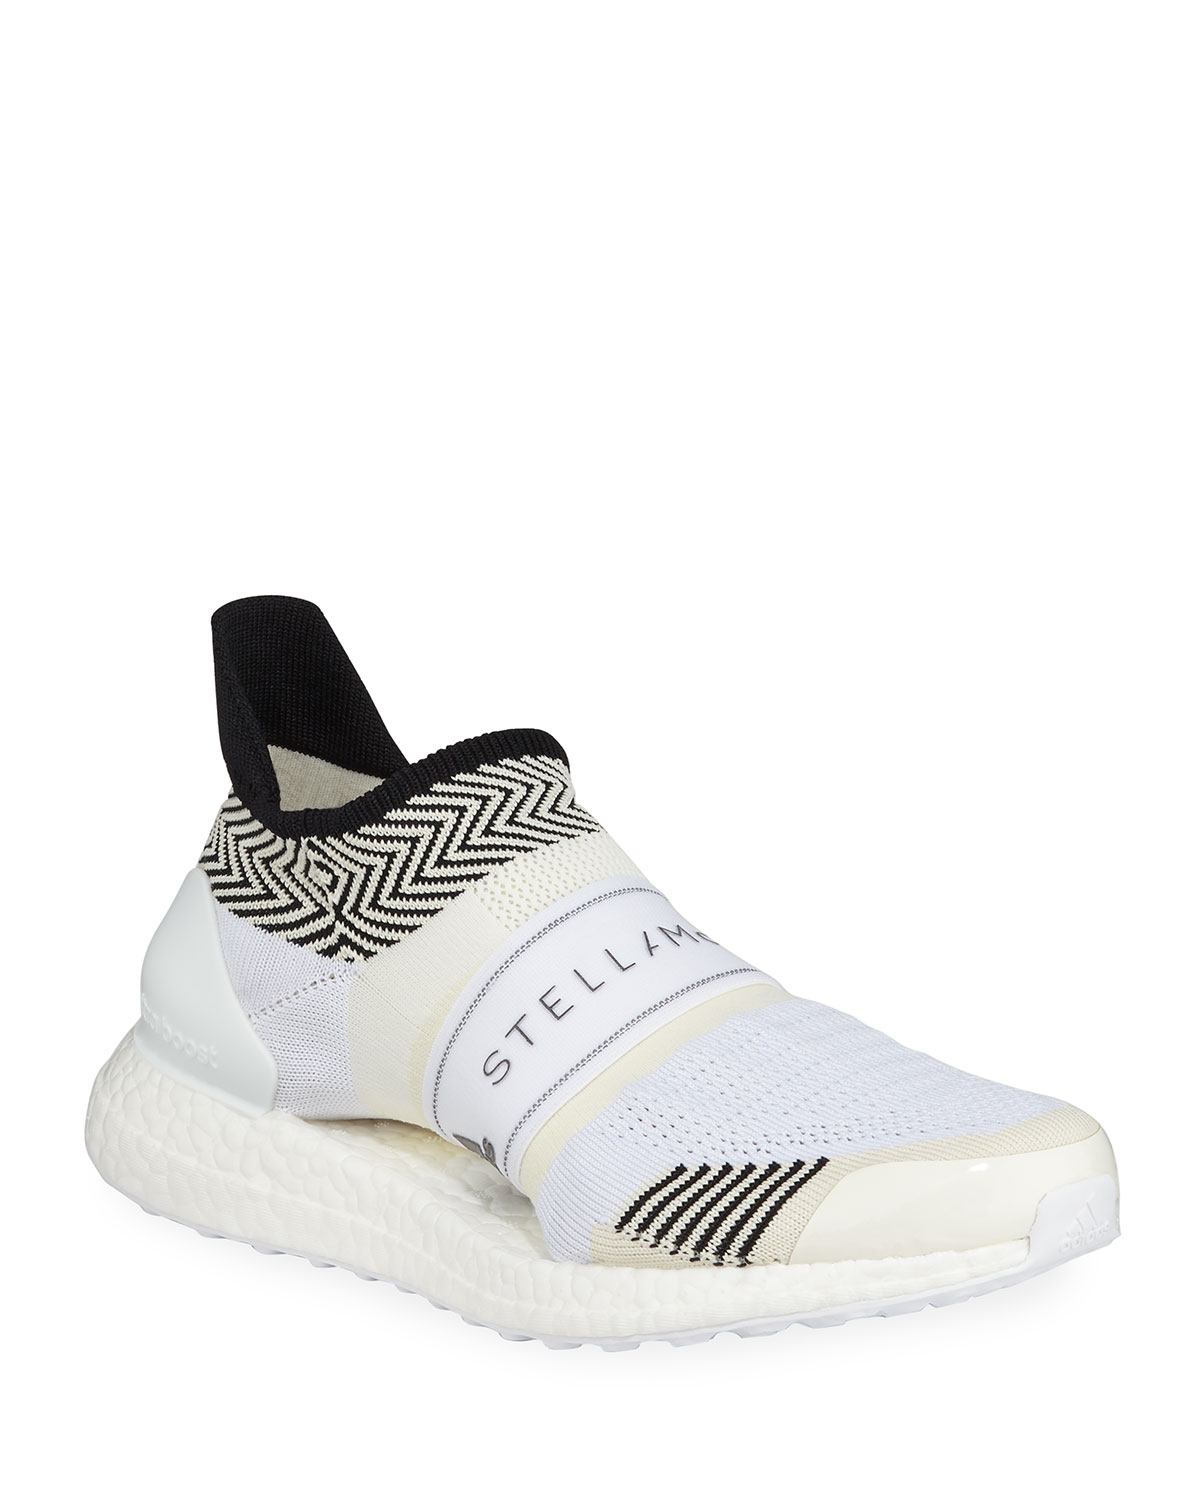 1ae100f2821 adidas by Stella McCartney UltraBoost X 3D Sneakers